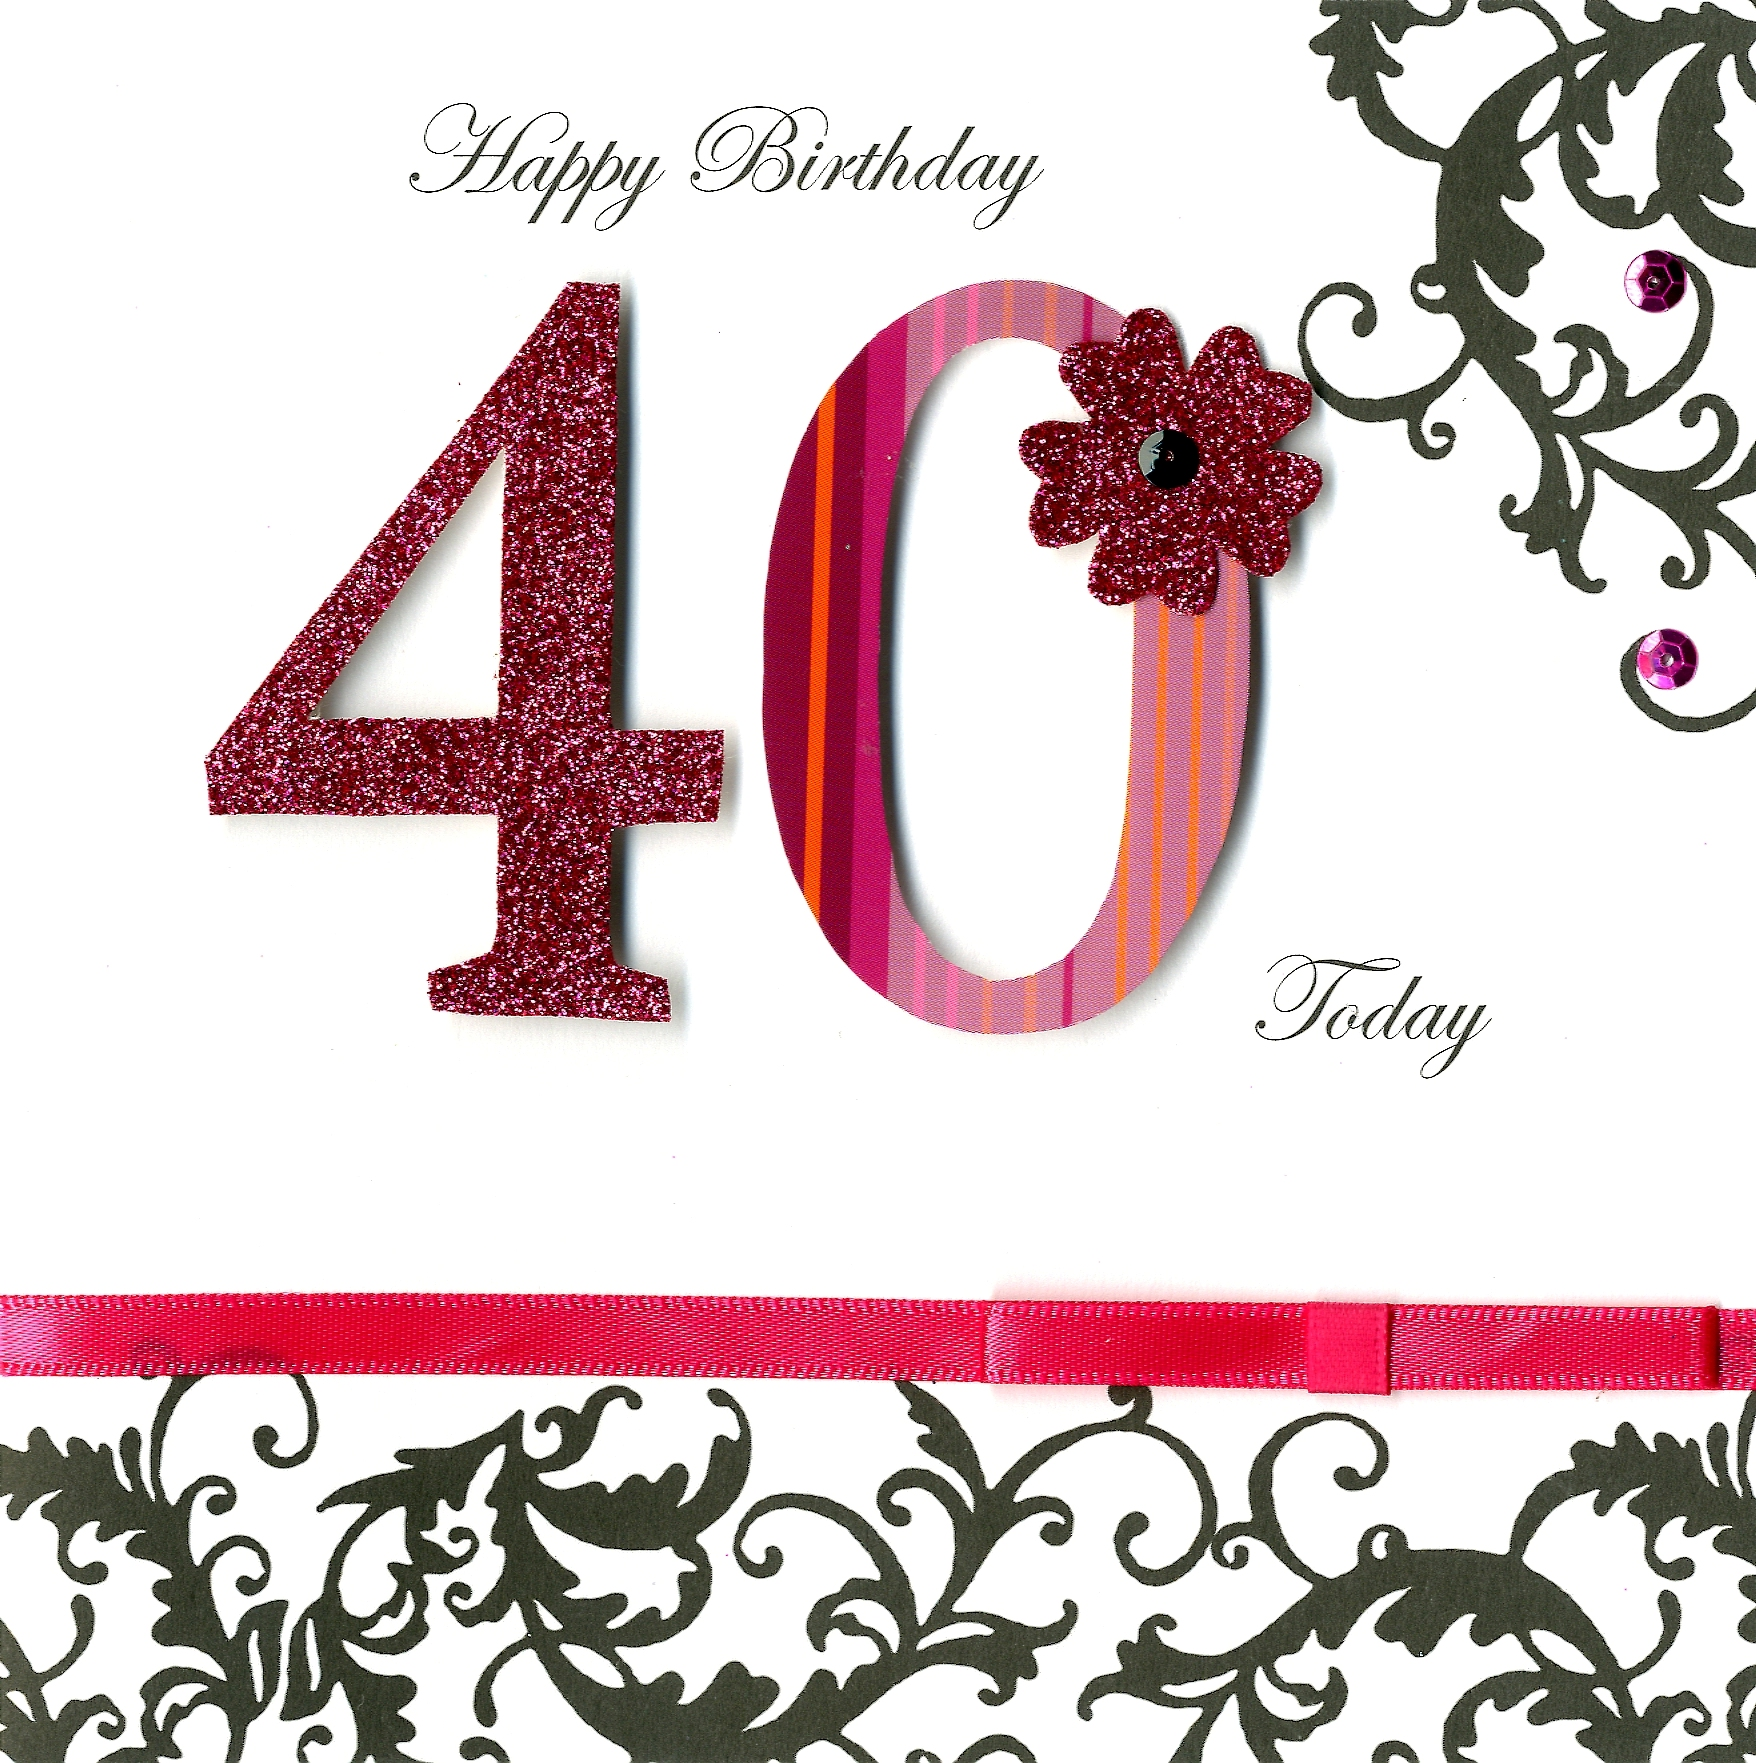 40 today 40th birthday embellished greeting card cards love kates 40 today 40th birthday embellished greeting card kristyandbryce Image collections